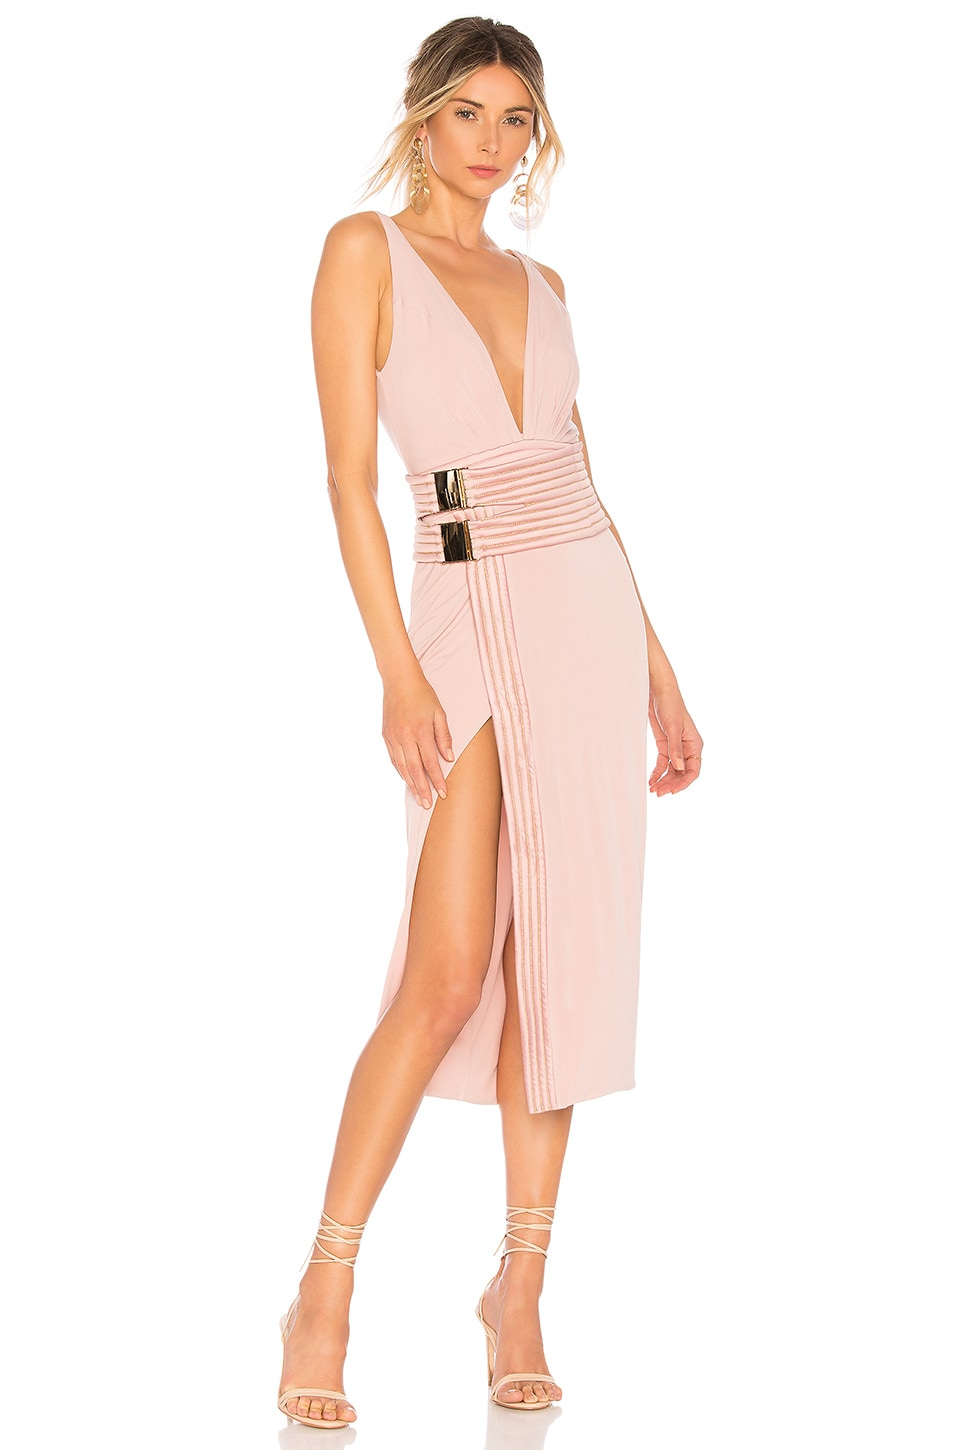 Zhivago Le Loft Dress in Blush